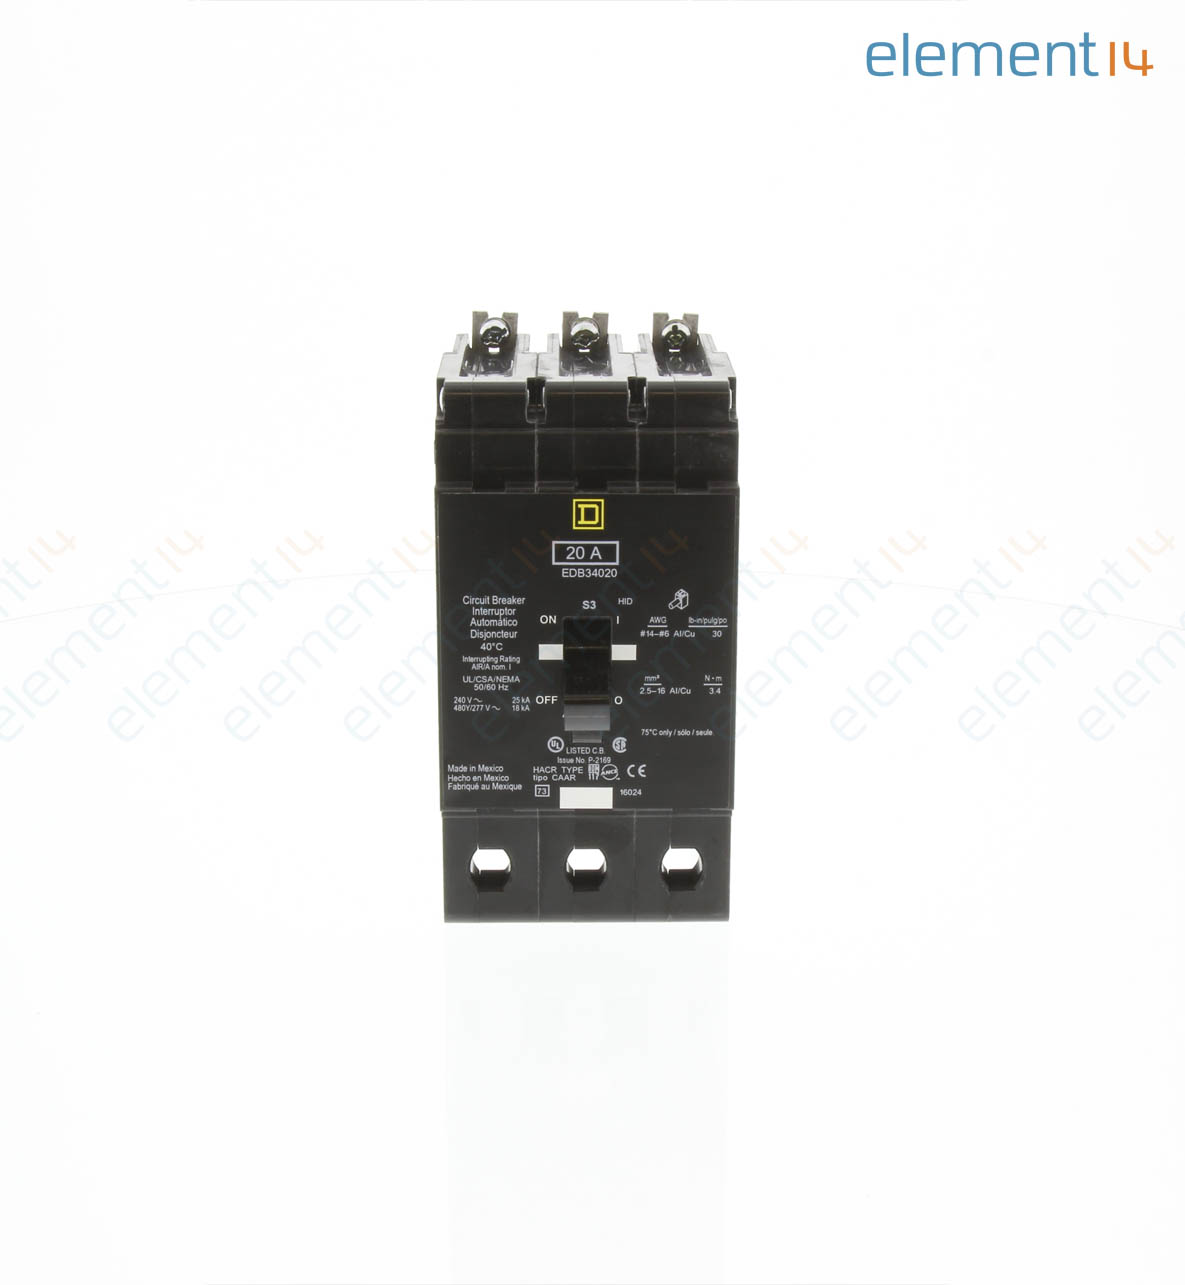 Edb34020 Square D By Schneider Electric Thermal Magnetic Circuit Off Miniature Breaker Module View Edb Series 20 A 3 Pole 277 Vac Bolt On